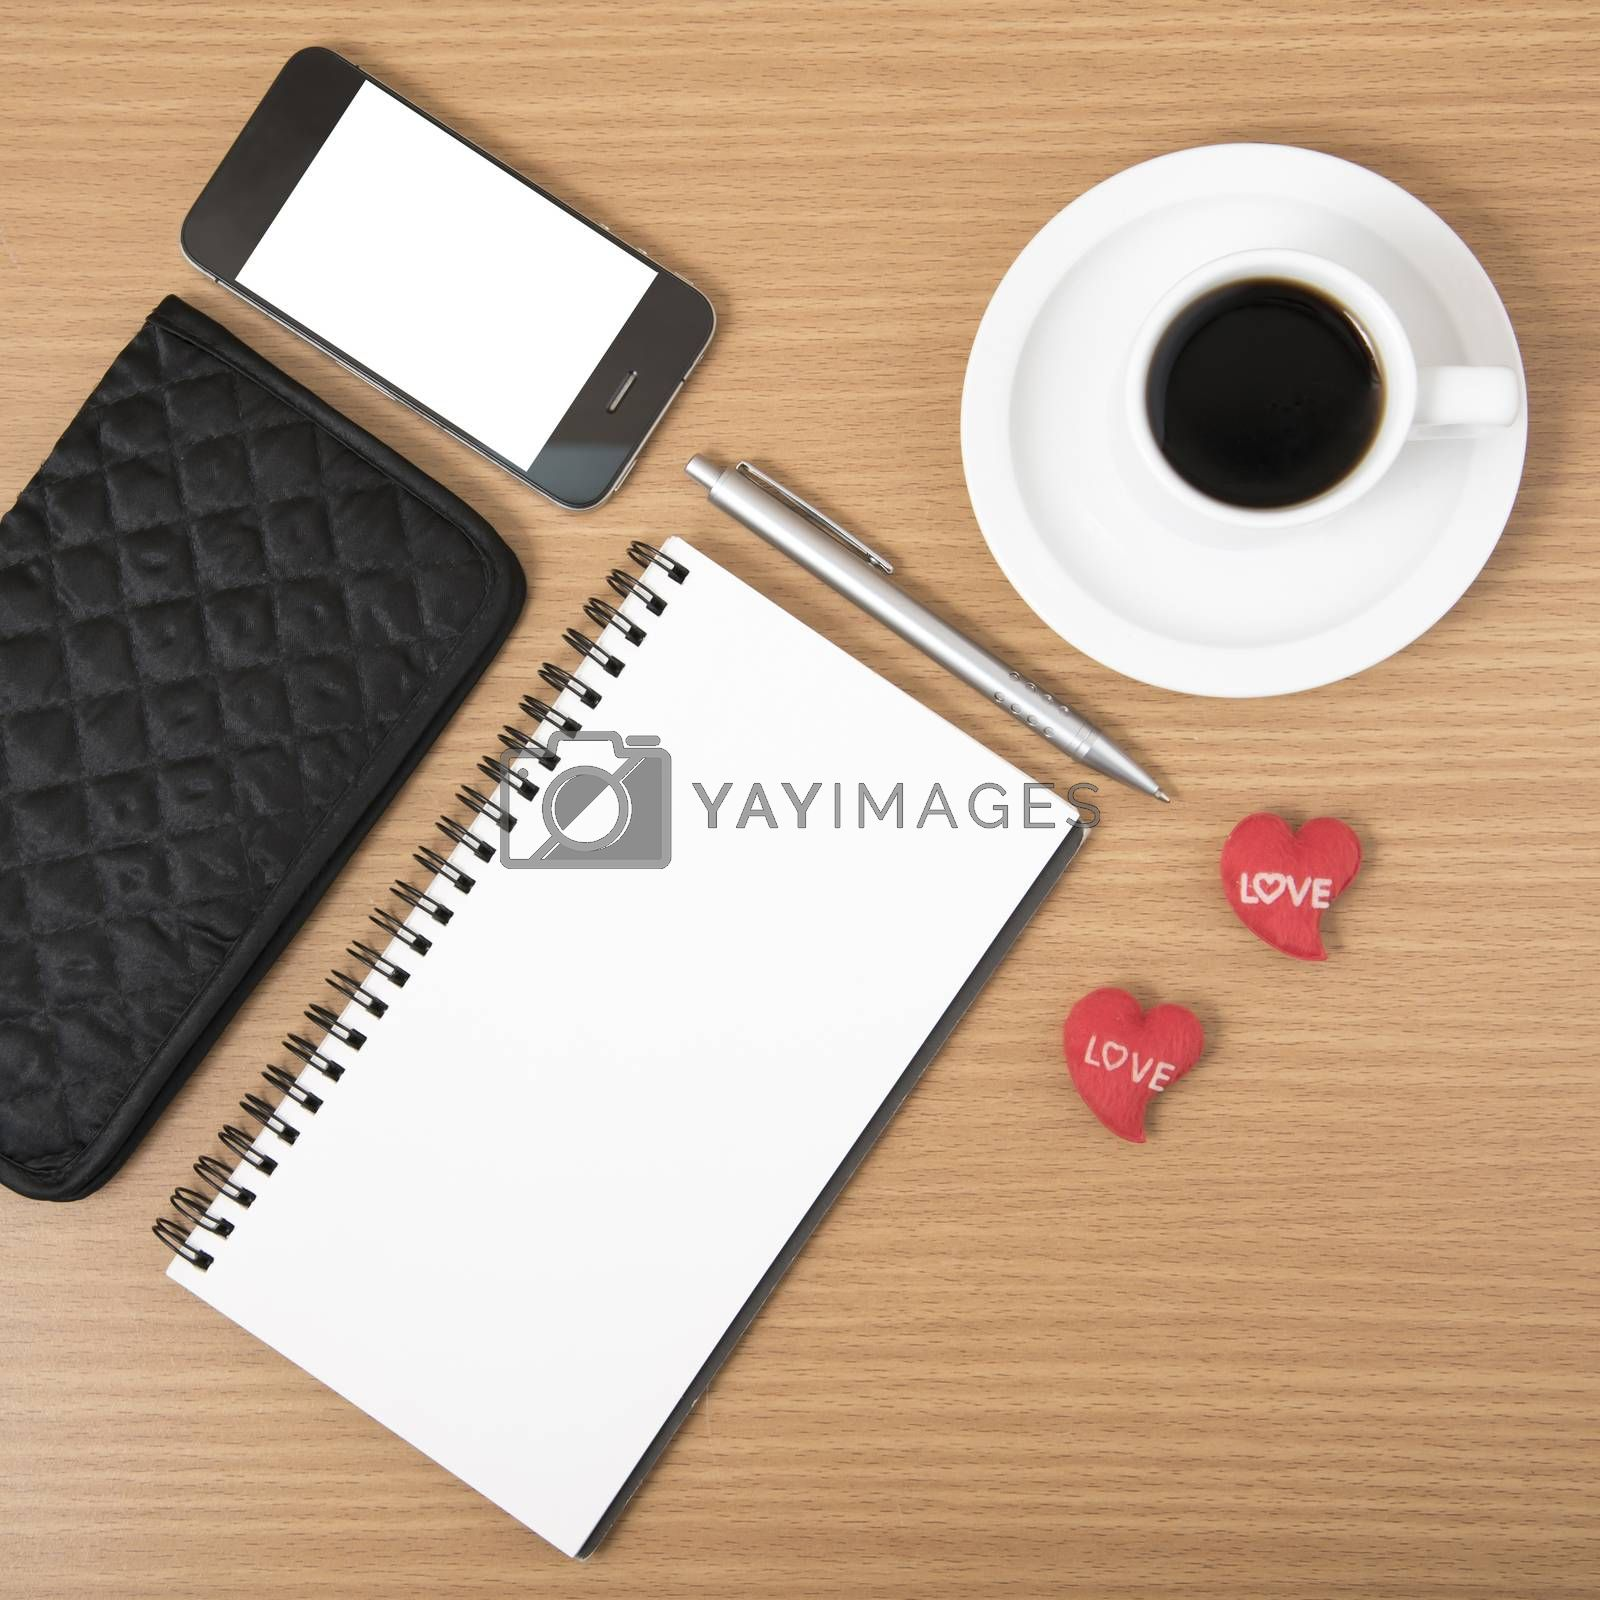 Royalty free image of working table : coffee with phone,notepad,wallet and red heart by ammza12